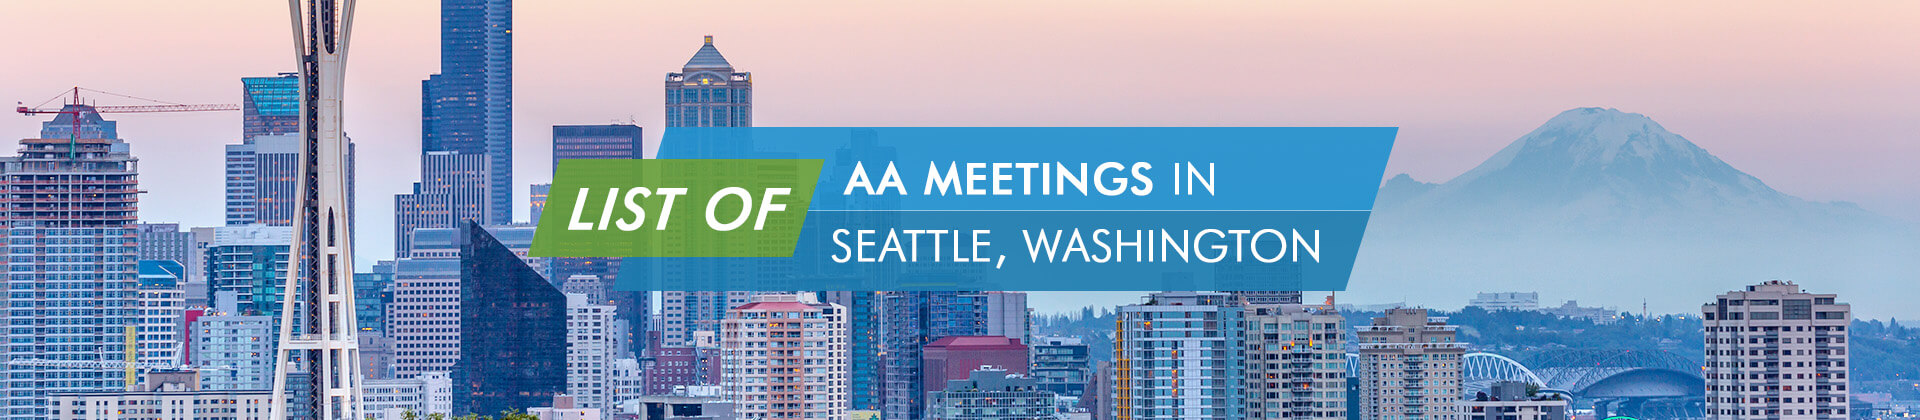 AA Meetings Seattle Washington